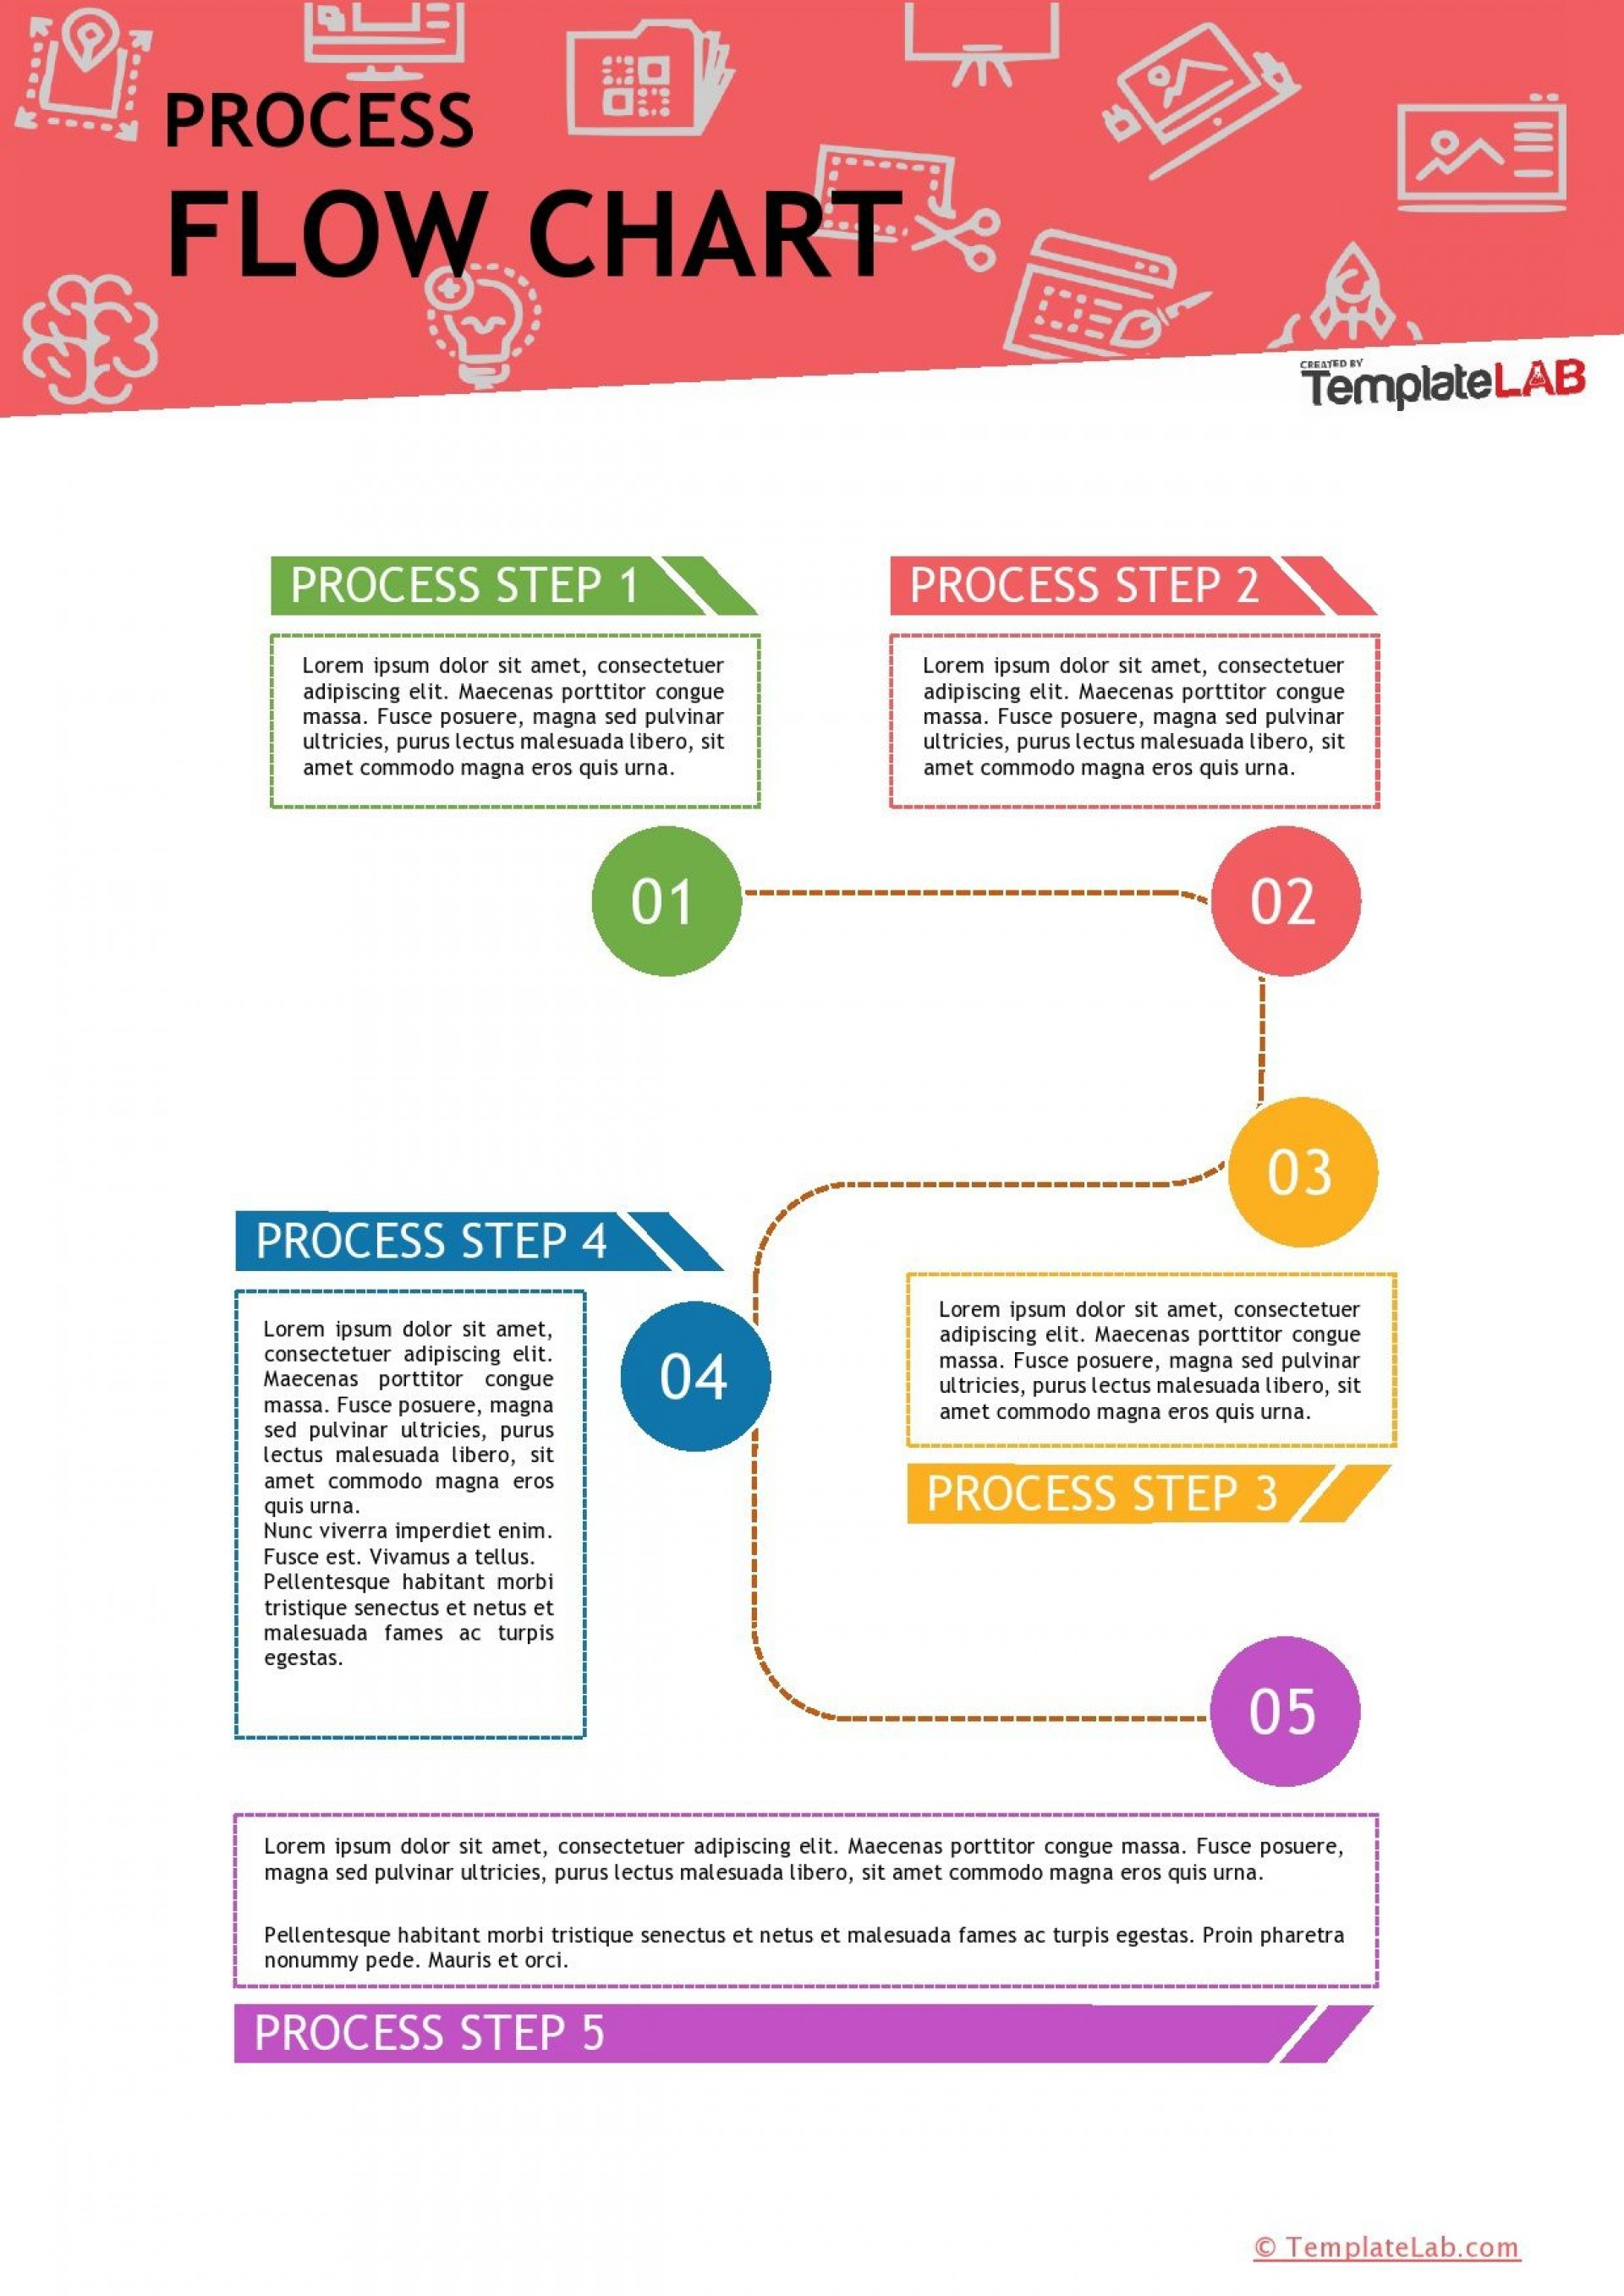 008 Remarkable Proces Flow Chart Template Excel Download Photo  Free1920